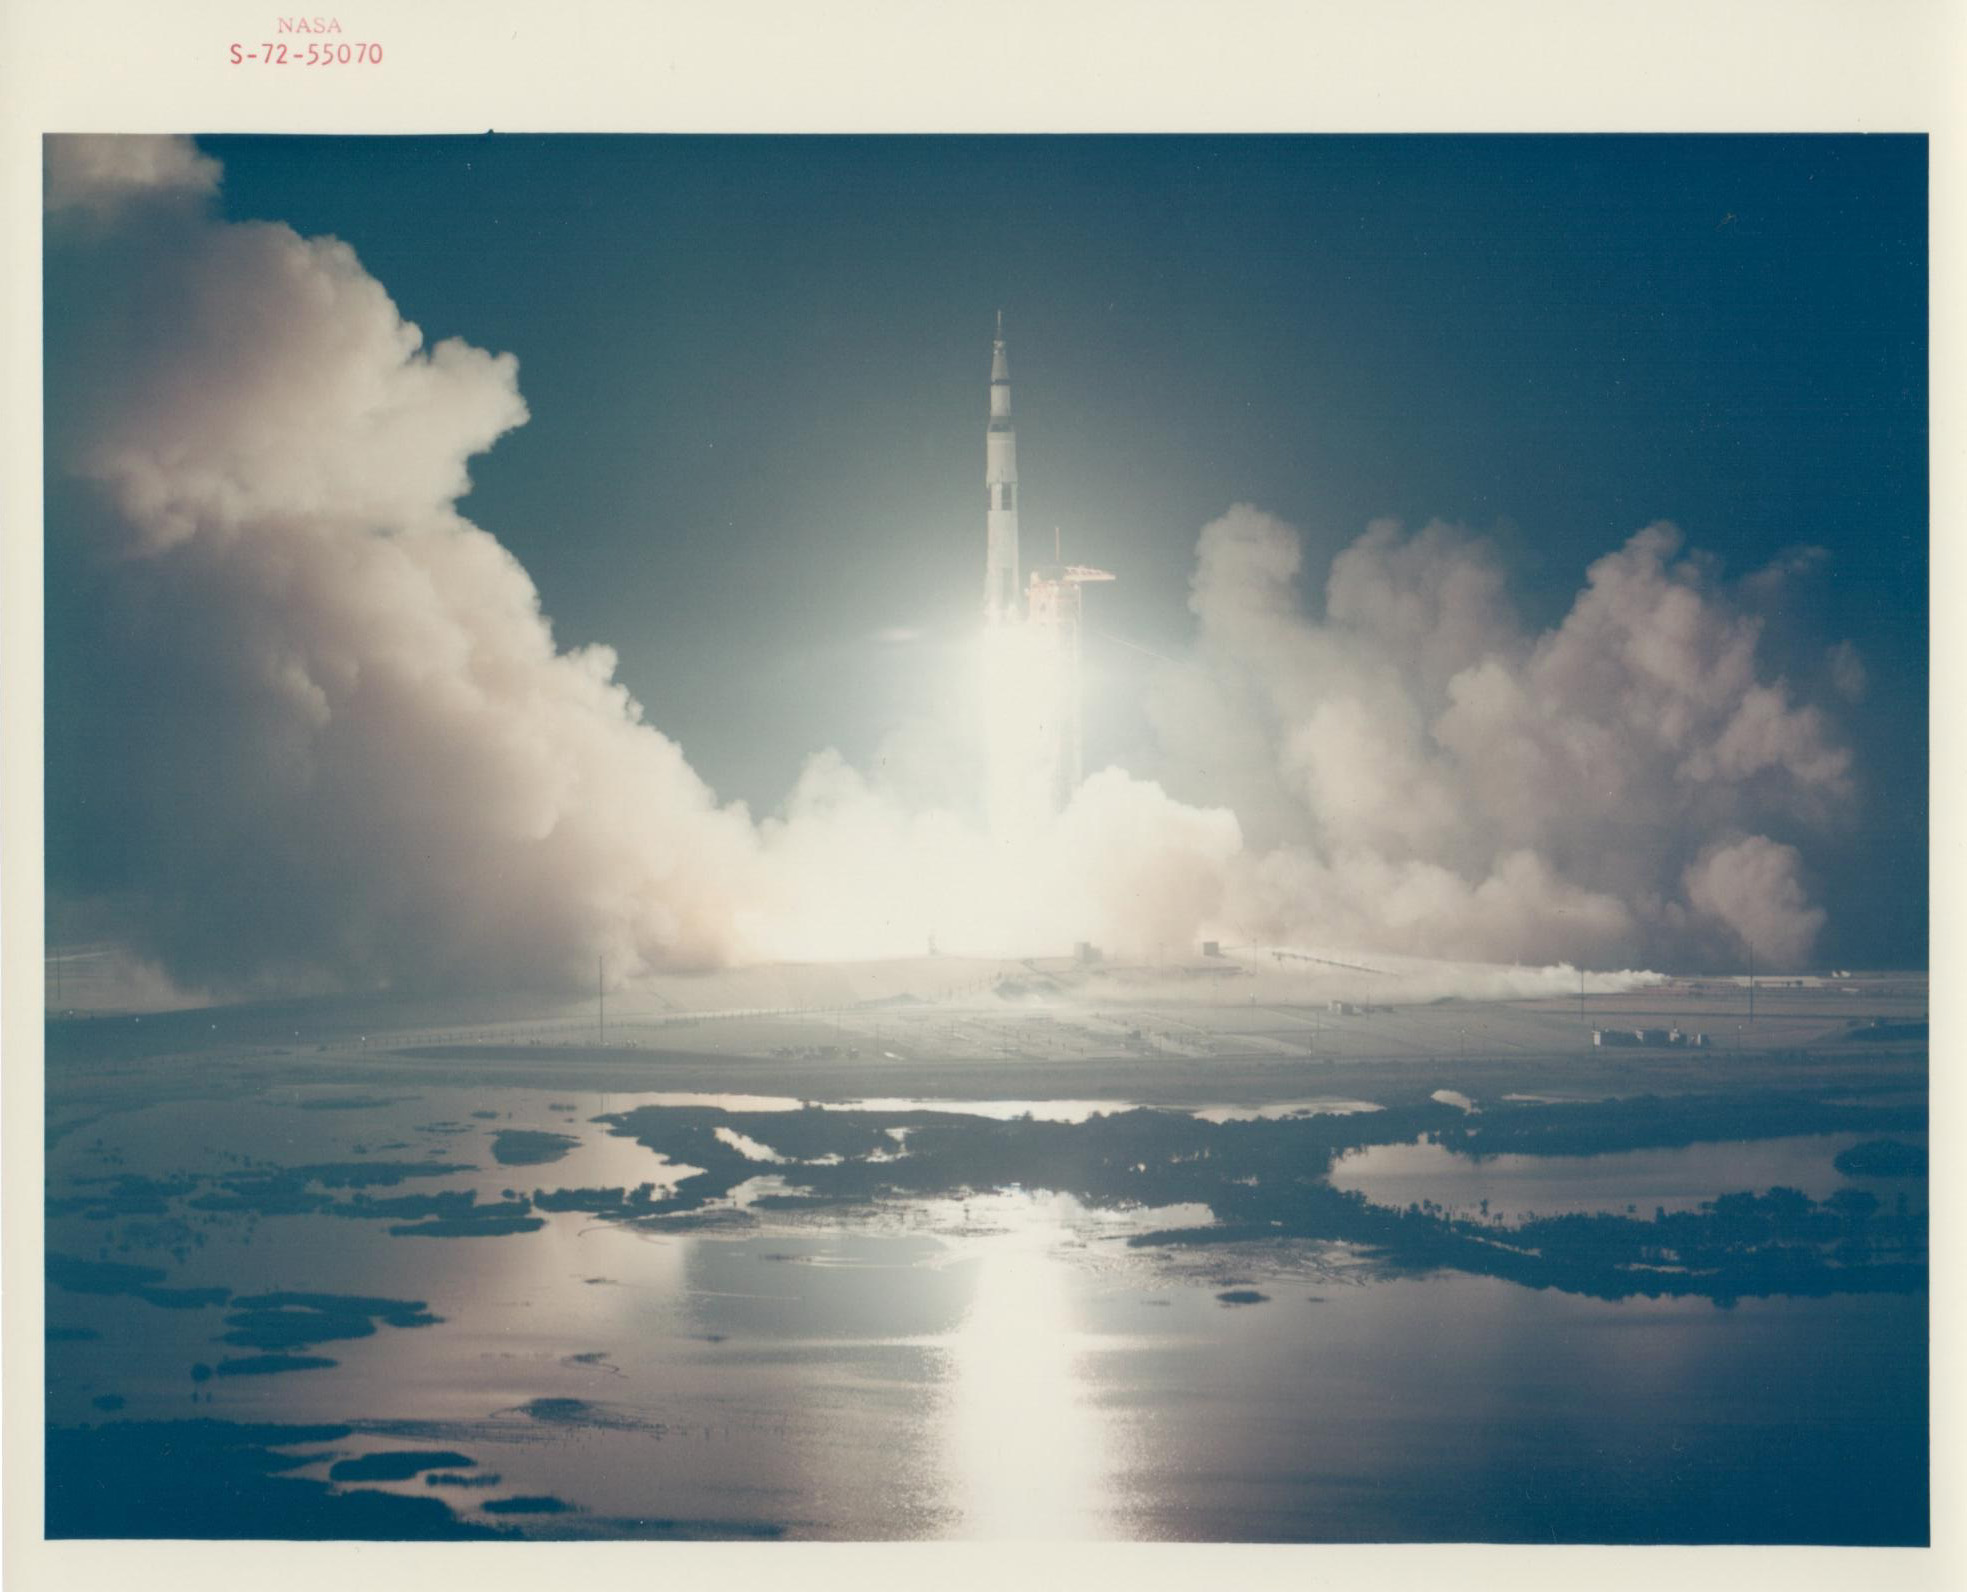 Liftoff of the last lunar mission, Apollo 17, December 1972